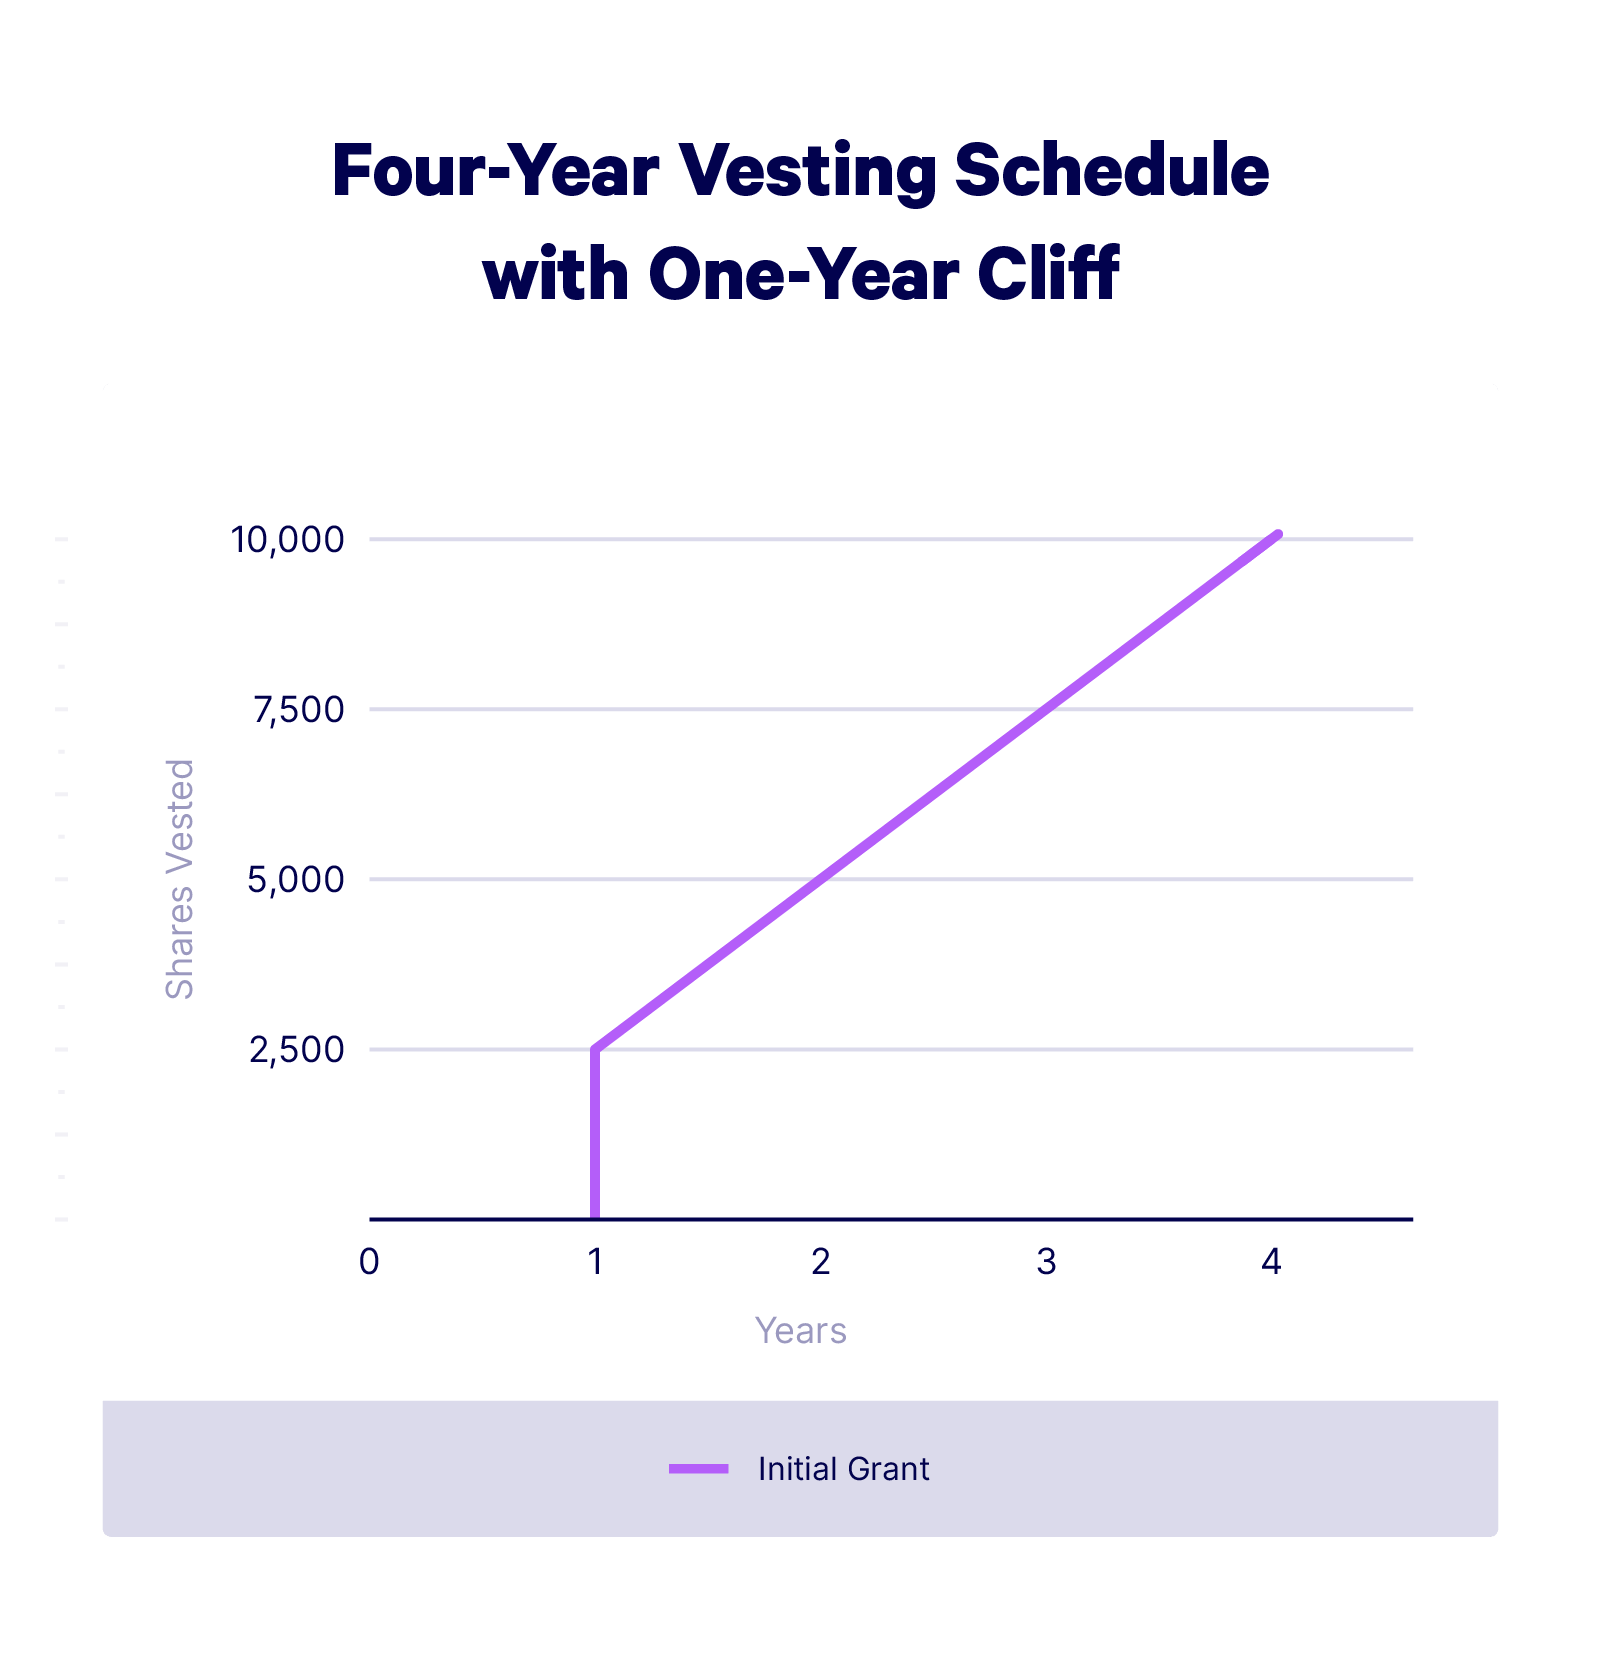 A graph showing the Four-Year Vesting Schedule with One-Year Cliff